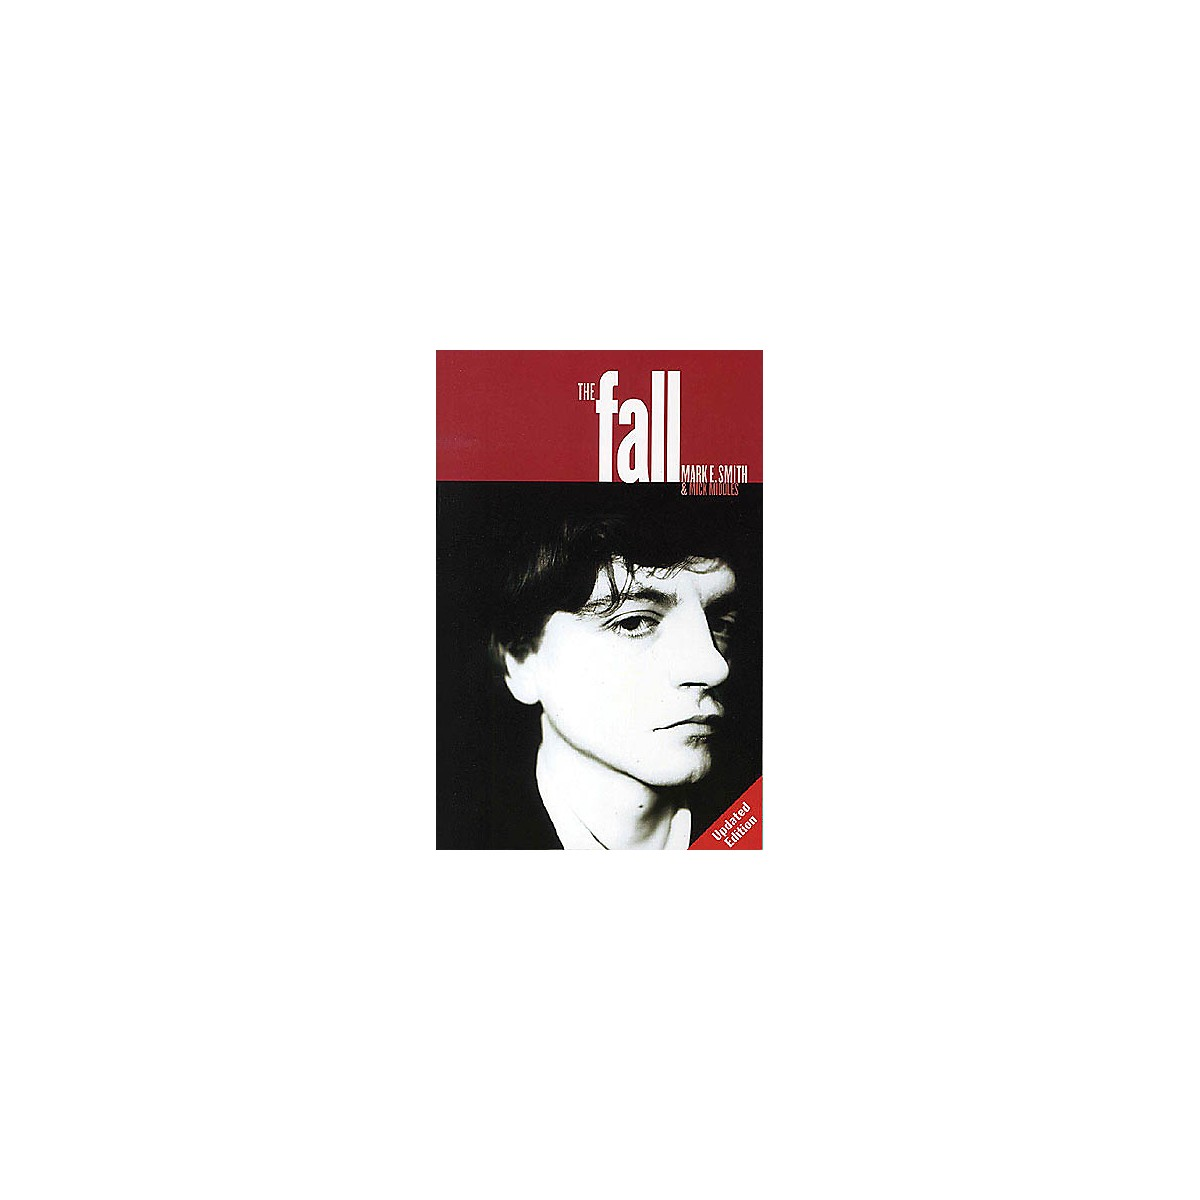 Omnibus The Fall (Mark E. Smith and Mick Middles) Omnibus Press Series Softcover